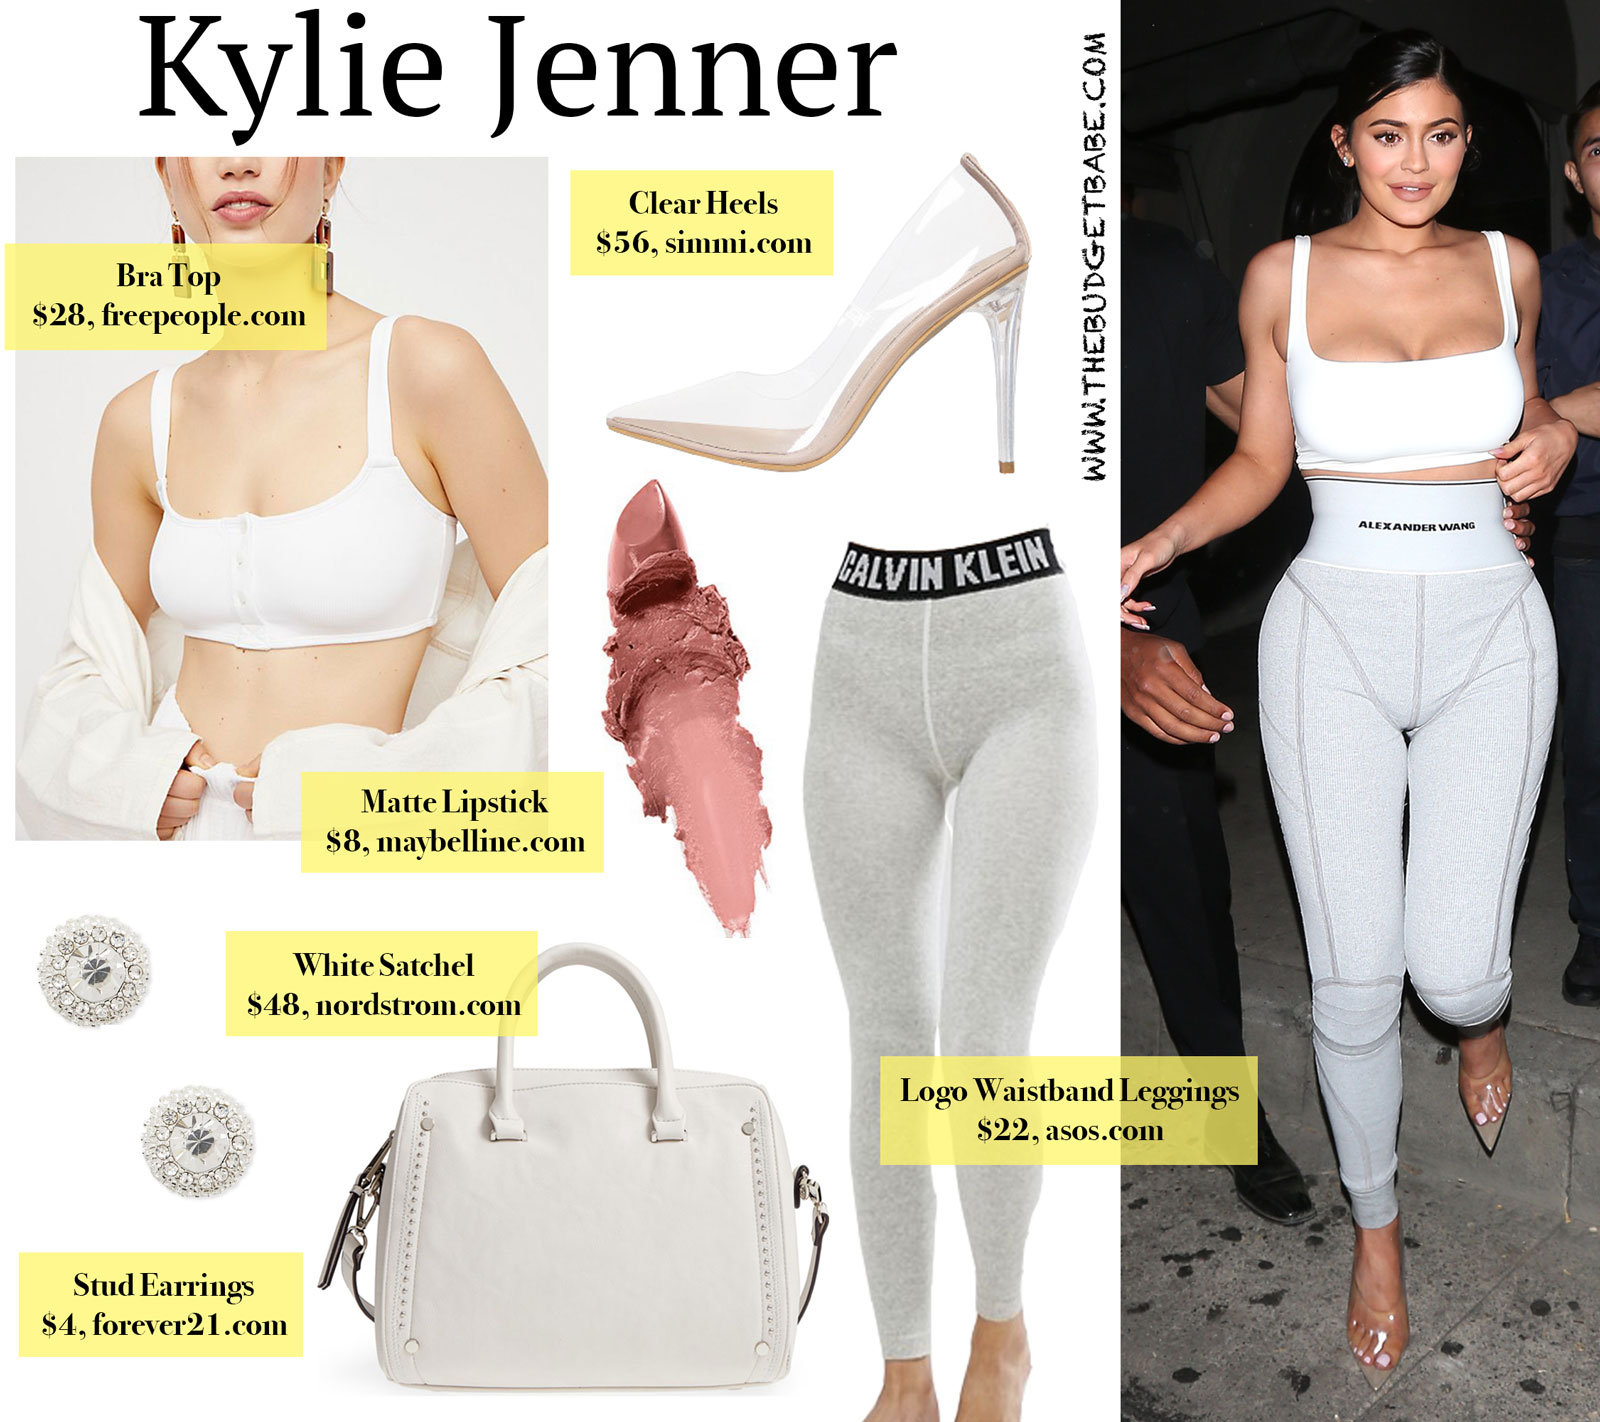 Kylie Jenner Logo Leggings and White Bra Top Look for Less